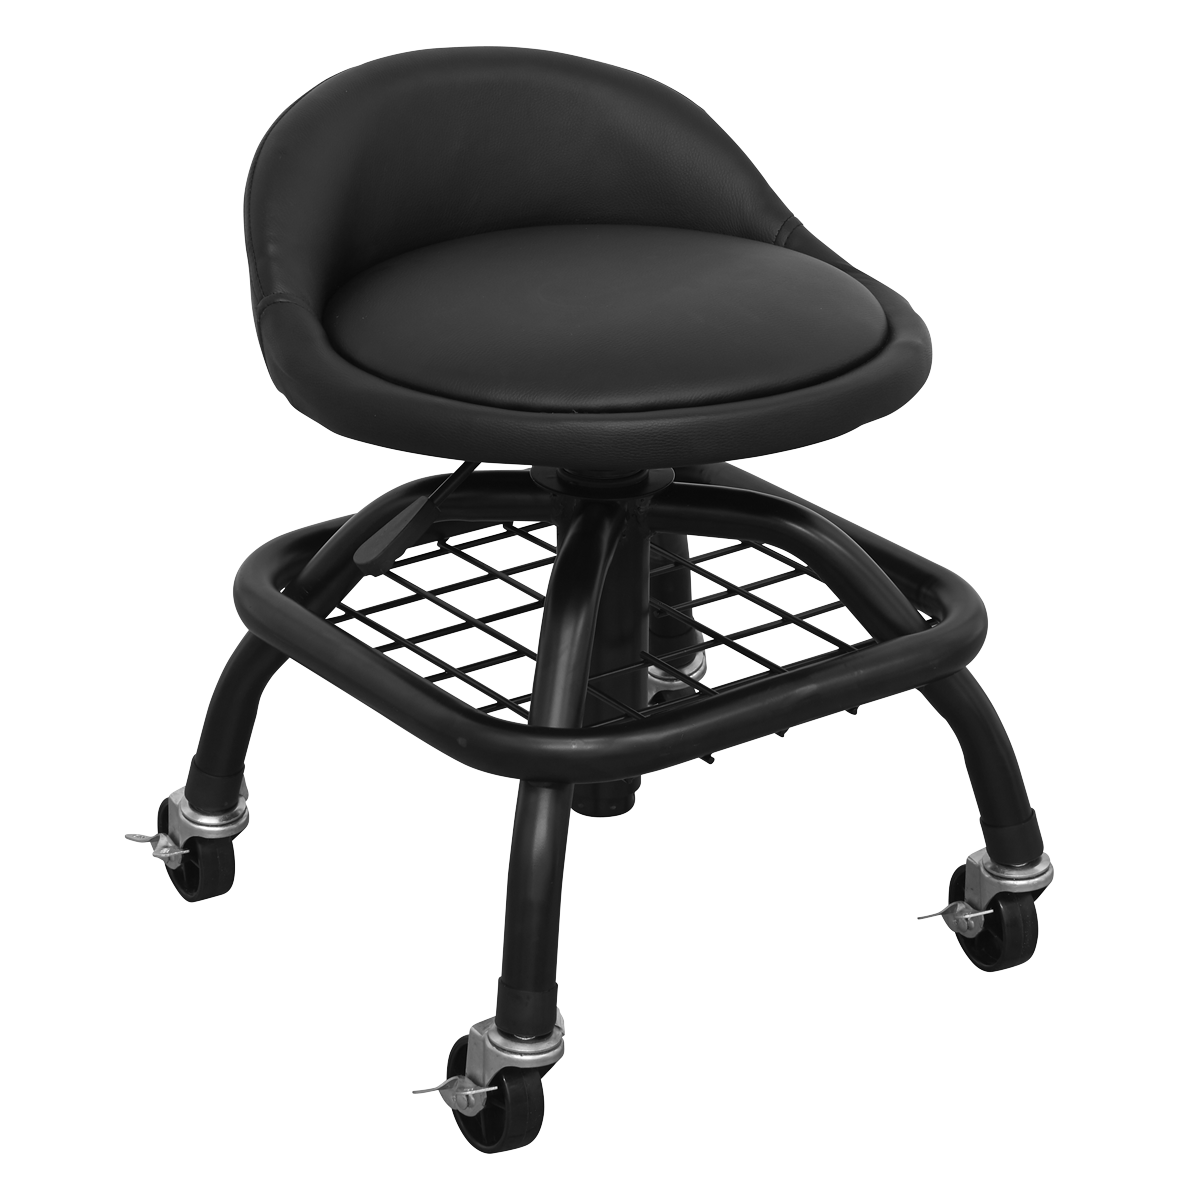 Creeper Stool Pneumatic with Adjustable Height Swivel Seat & Back Rest